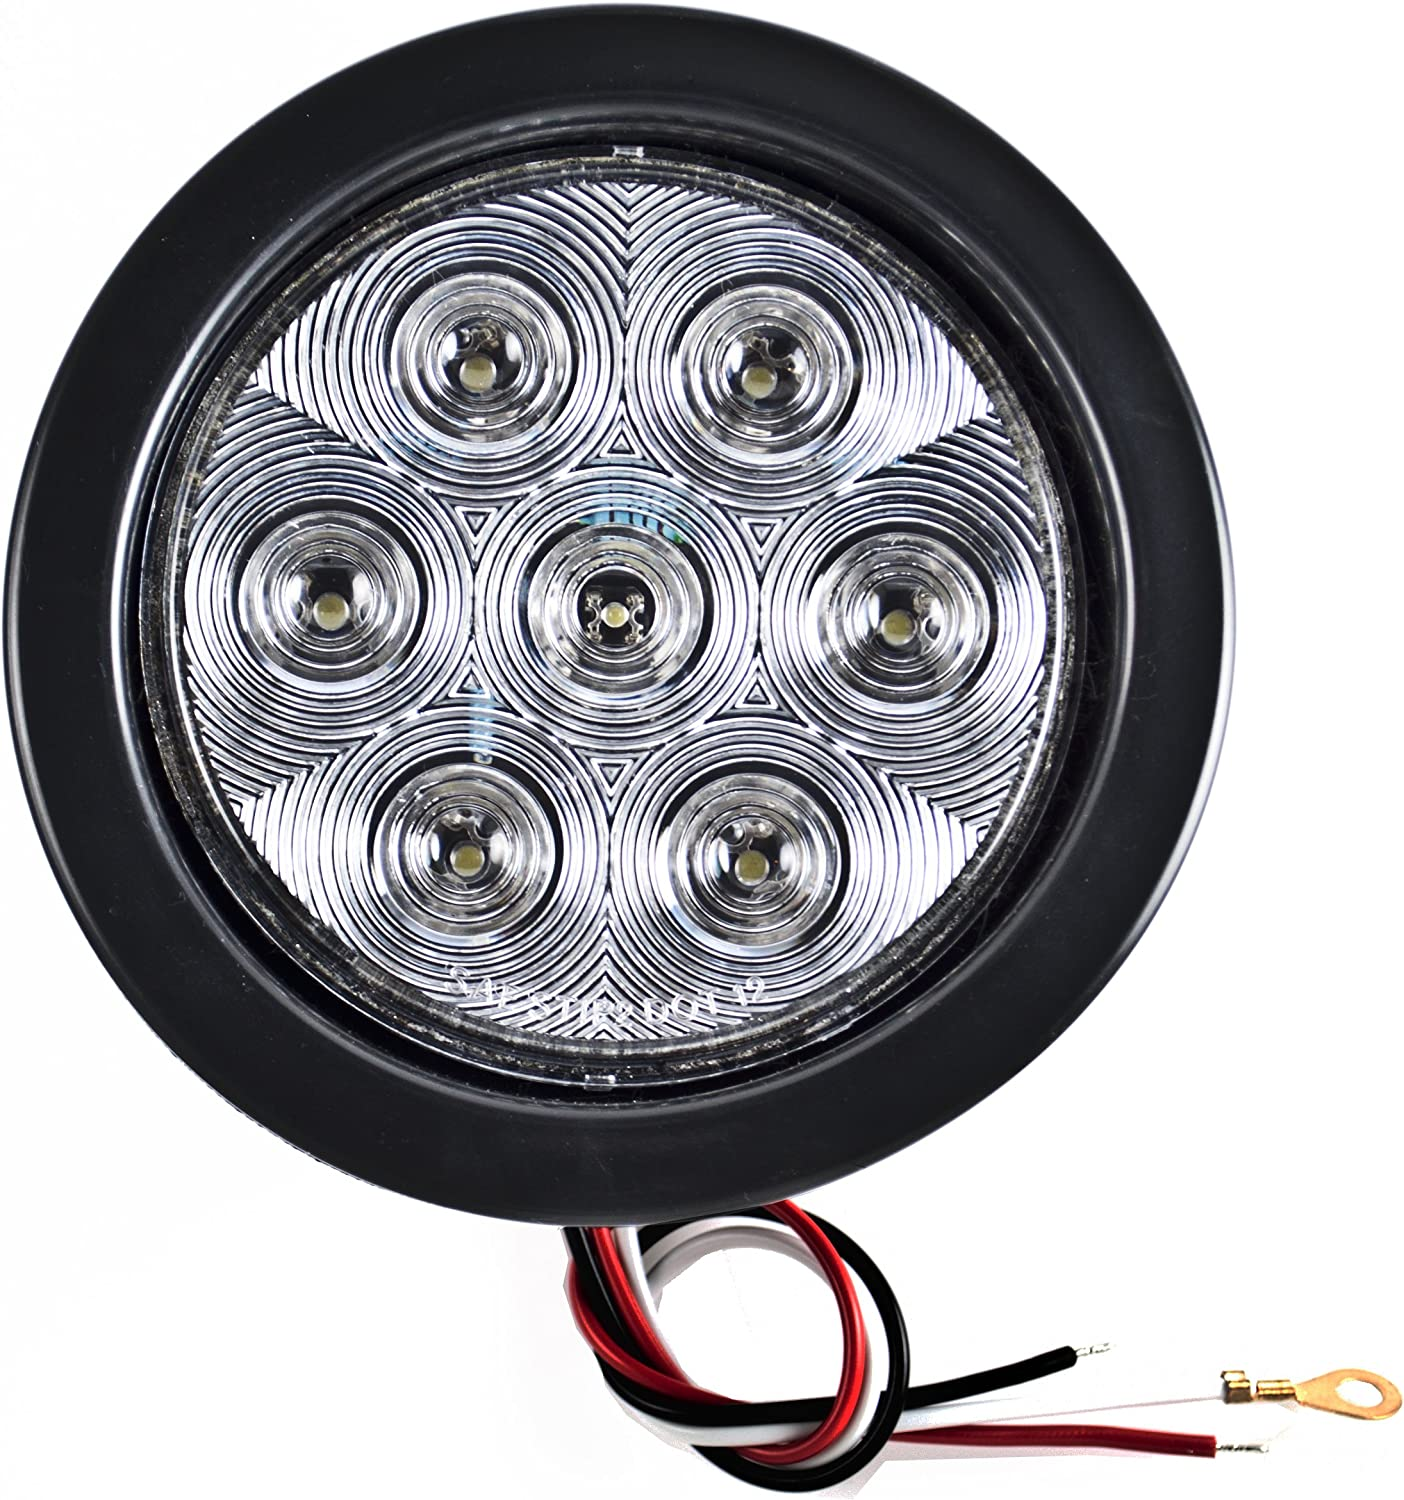 Grommet /& Pigtail 4 Red 2 White 4 Inch 7 LED Round Stop//Backup//Reverse Truck Trailer Tail Light Kit w